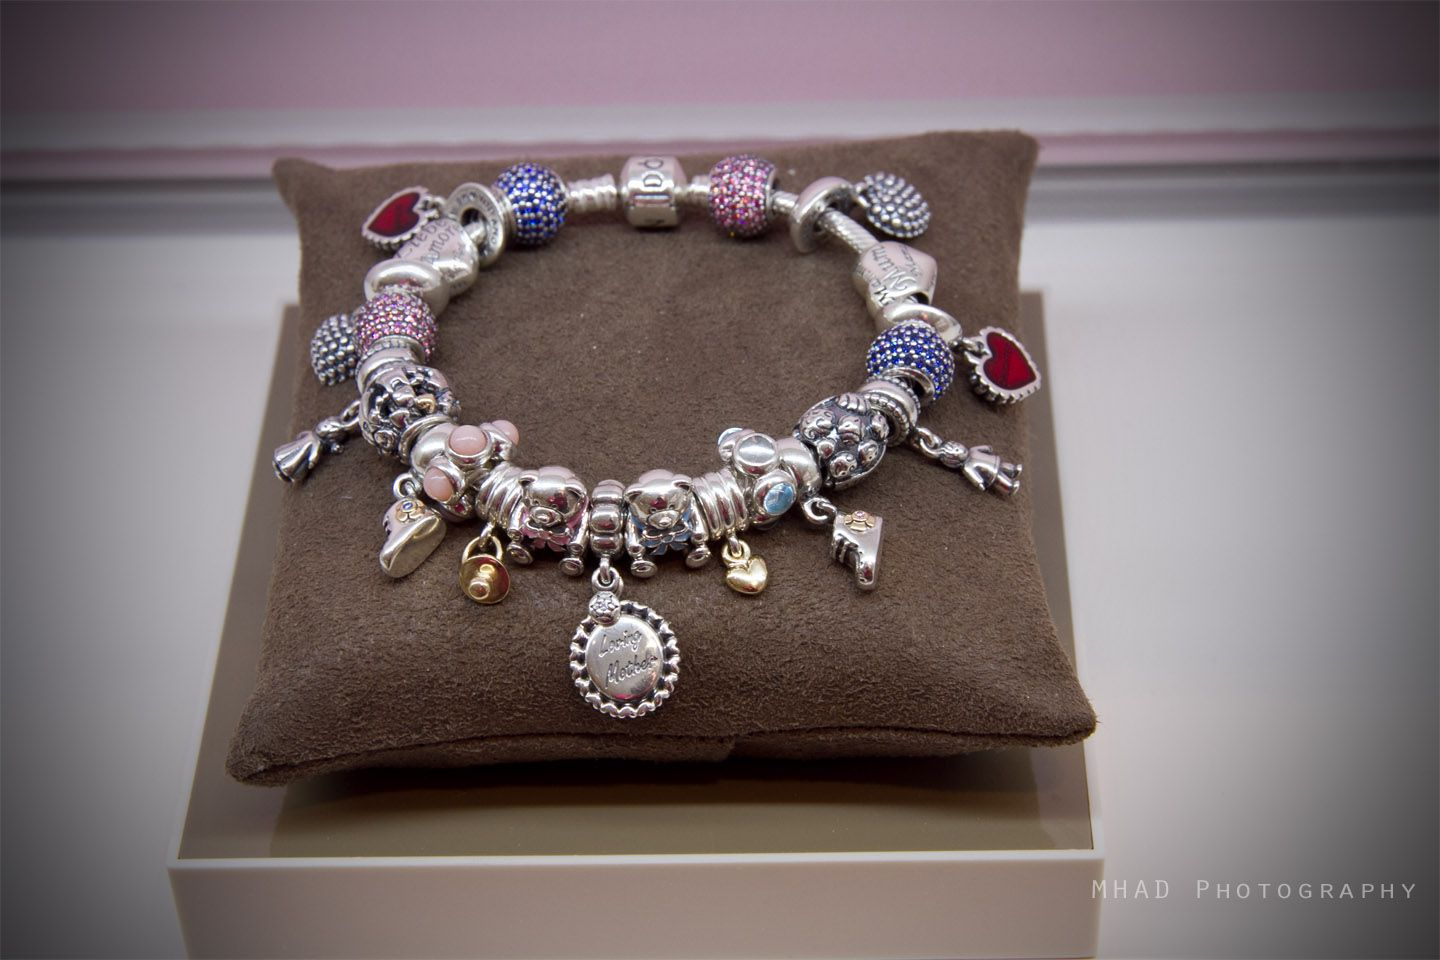 This bracelet features a number of new charms great for motherus day